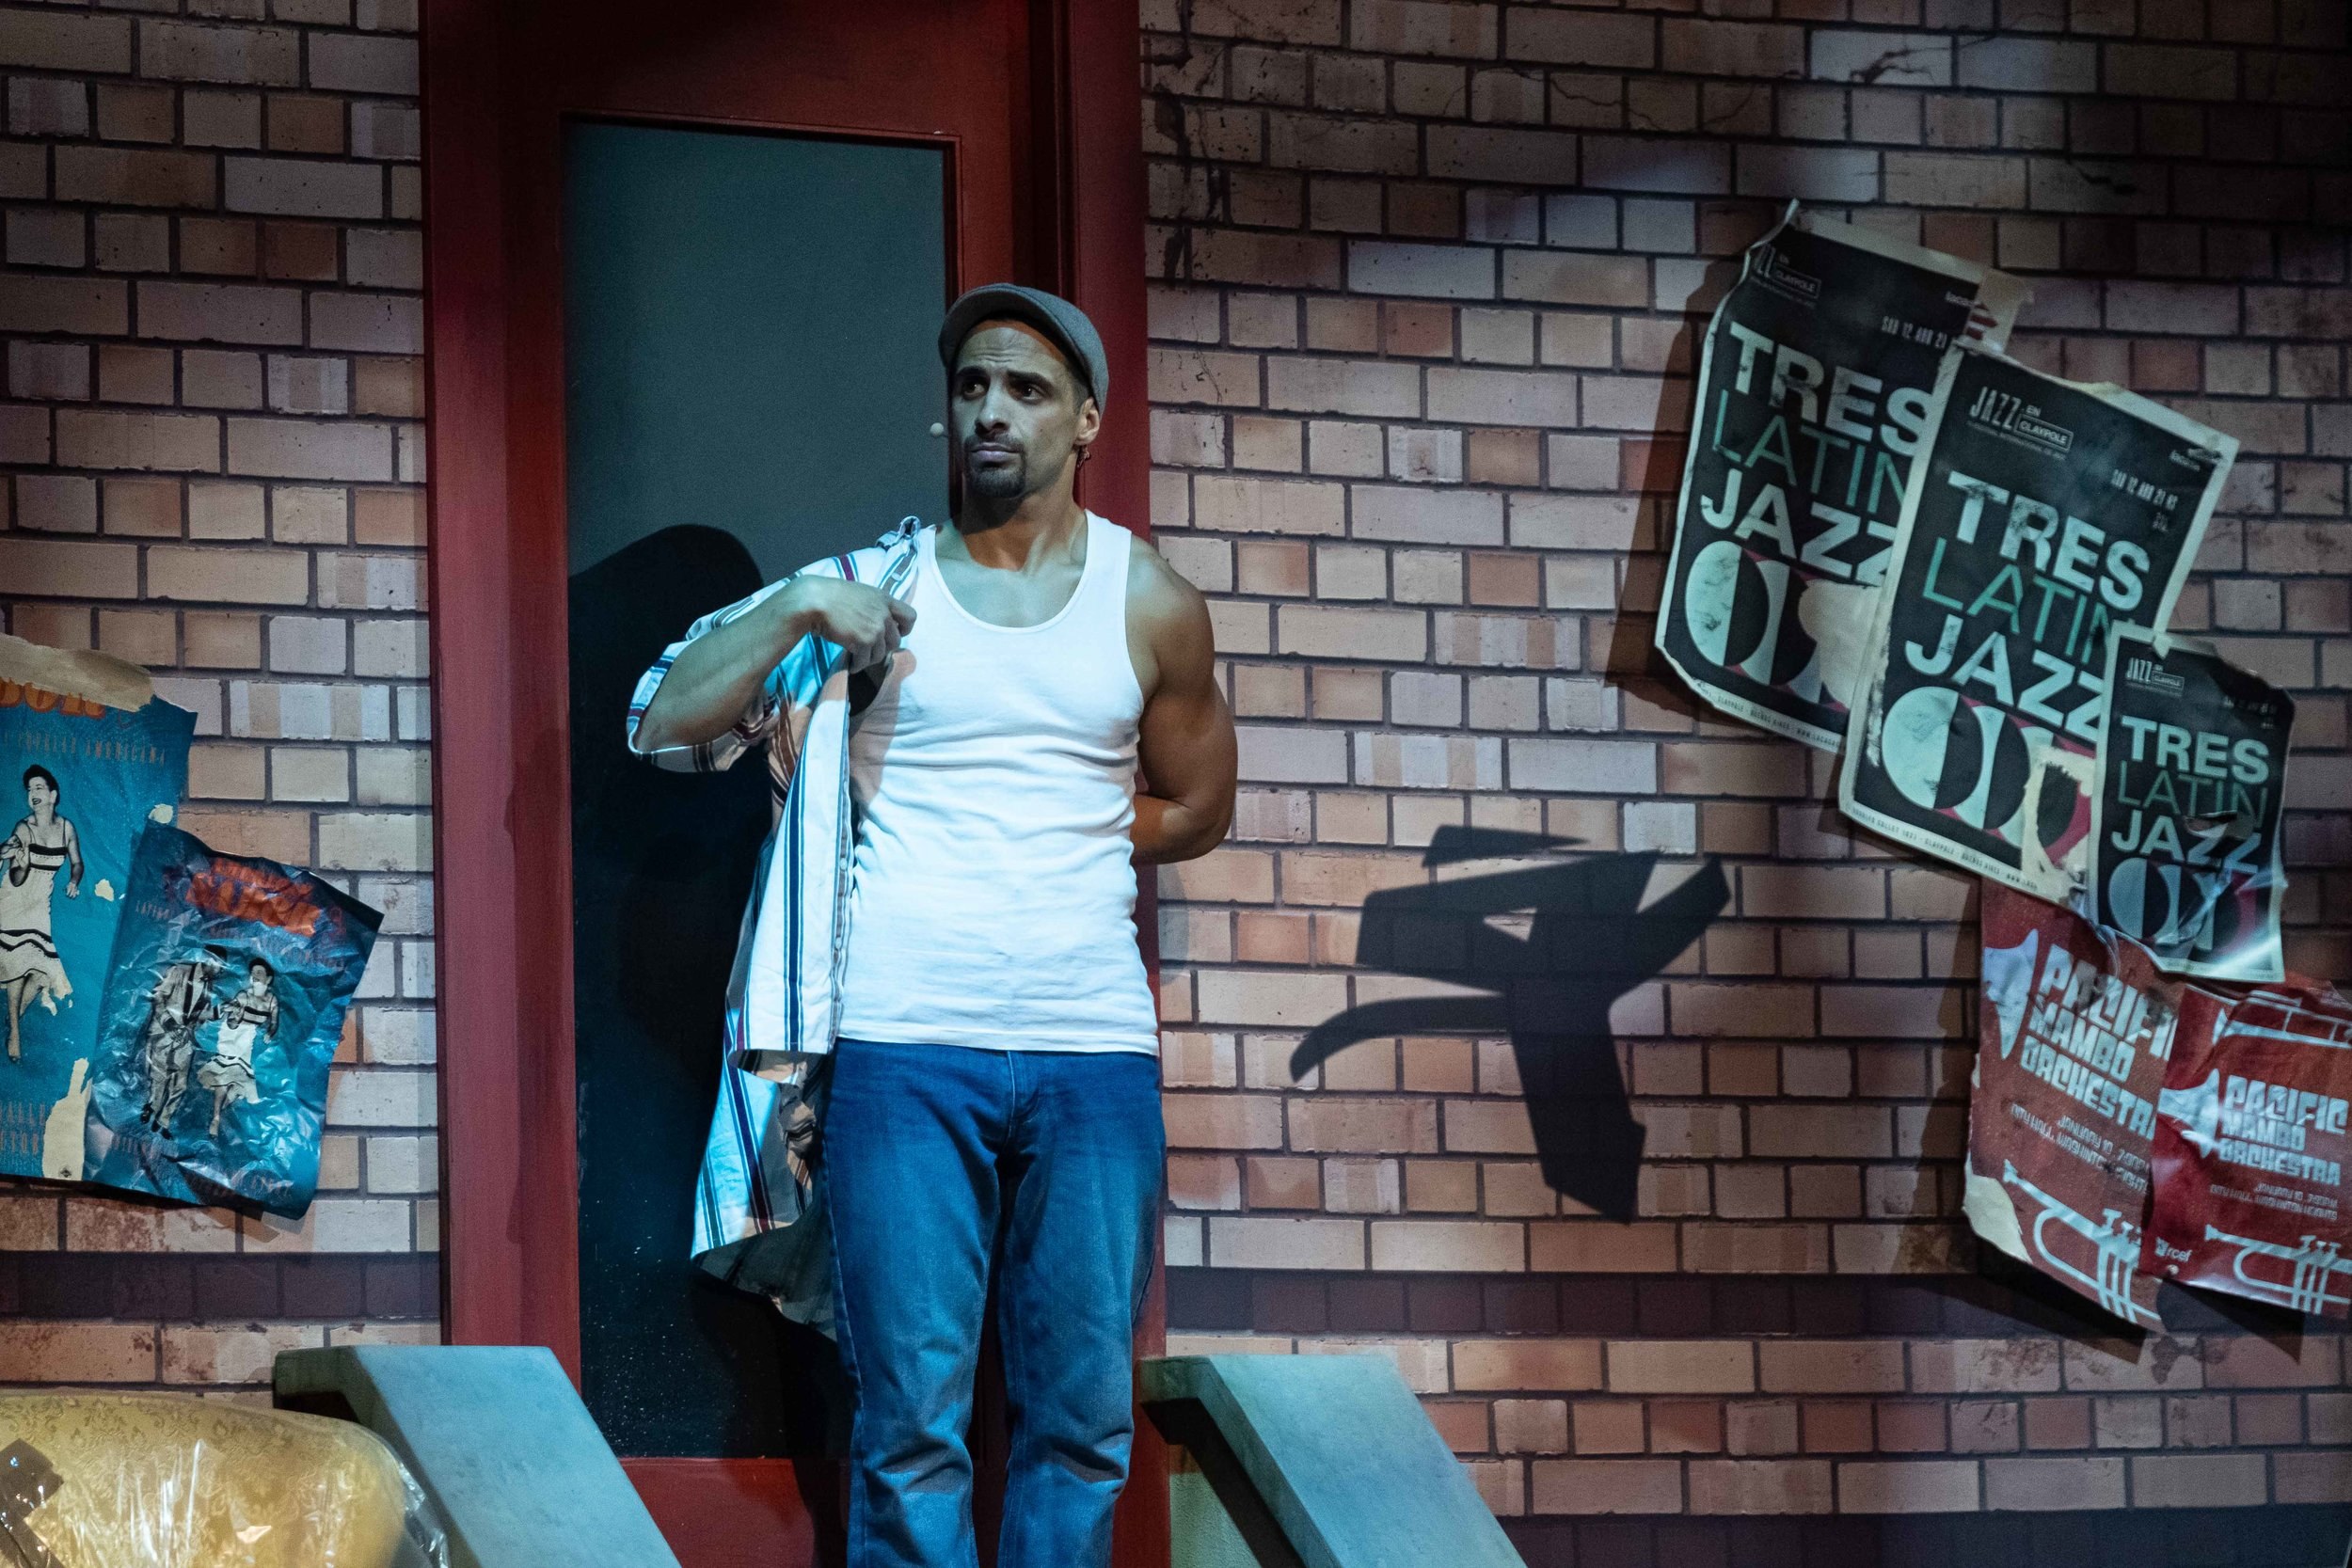 Stephen Lopez InTheHeights_SOH_clarehawley-24.jpg